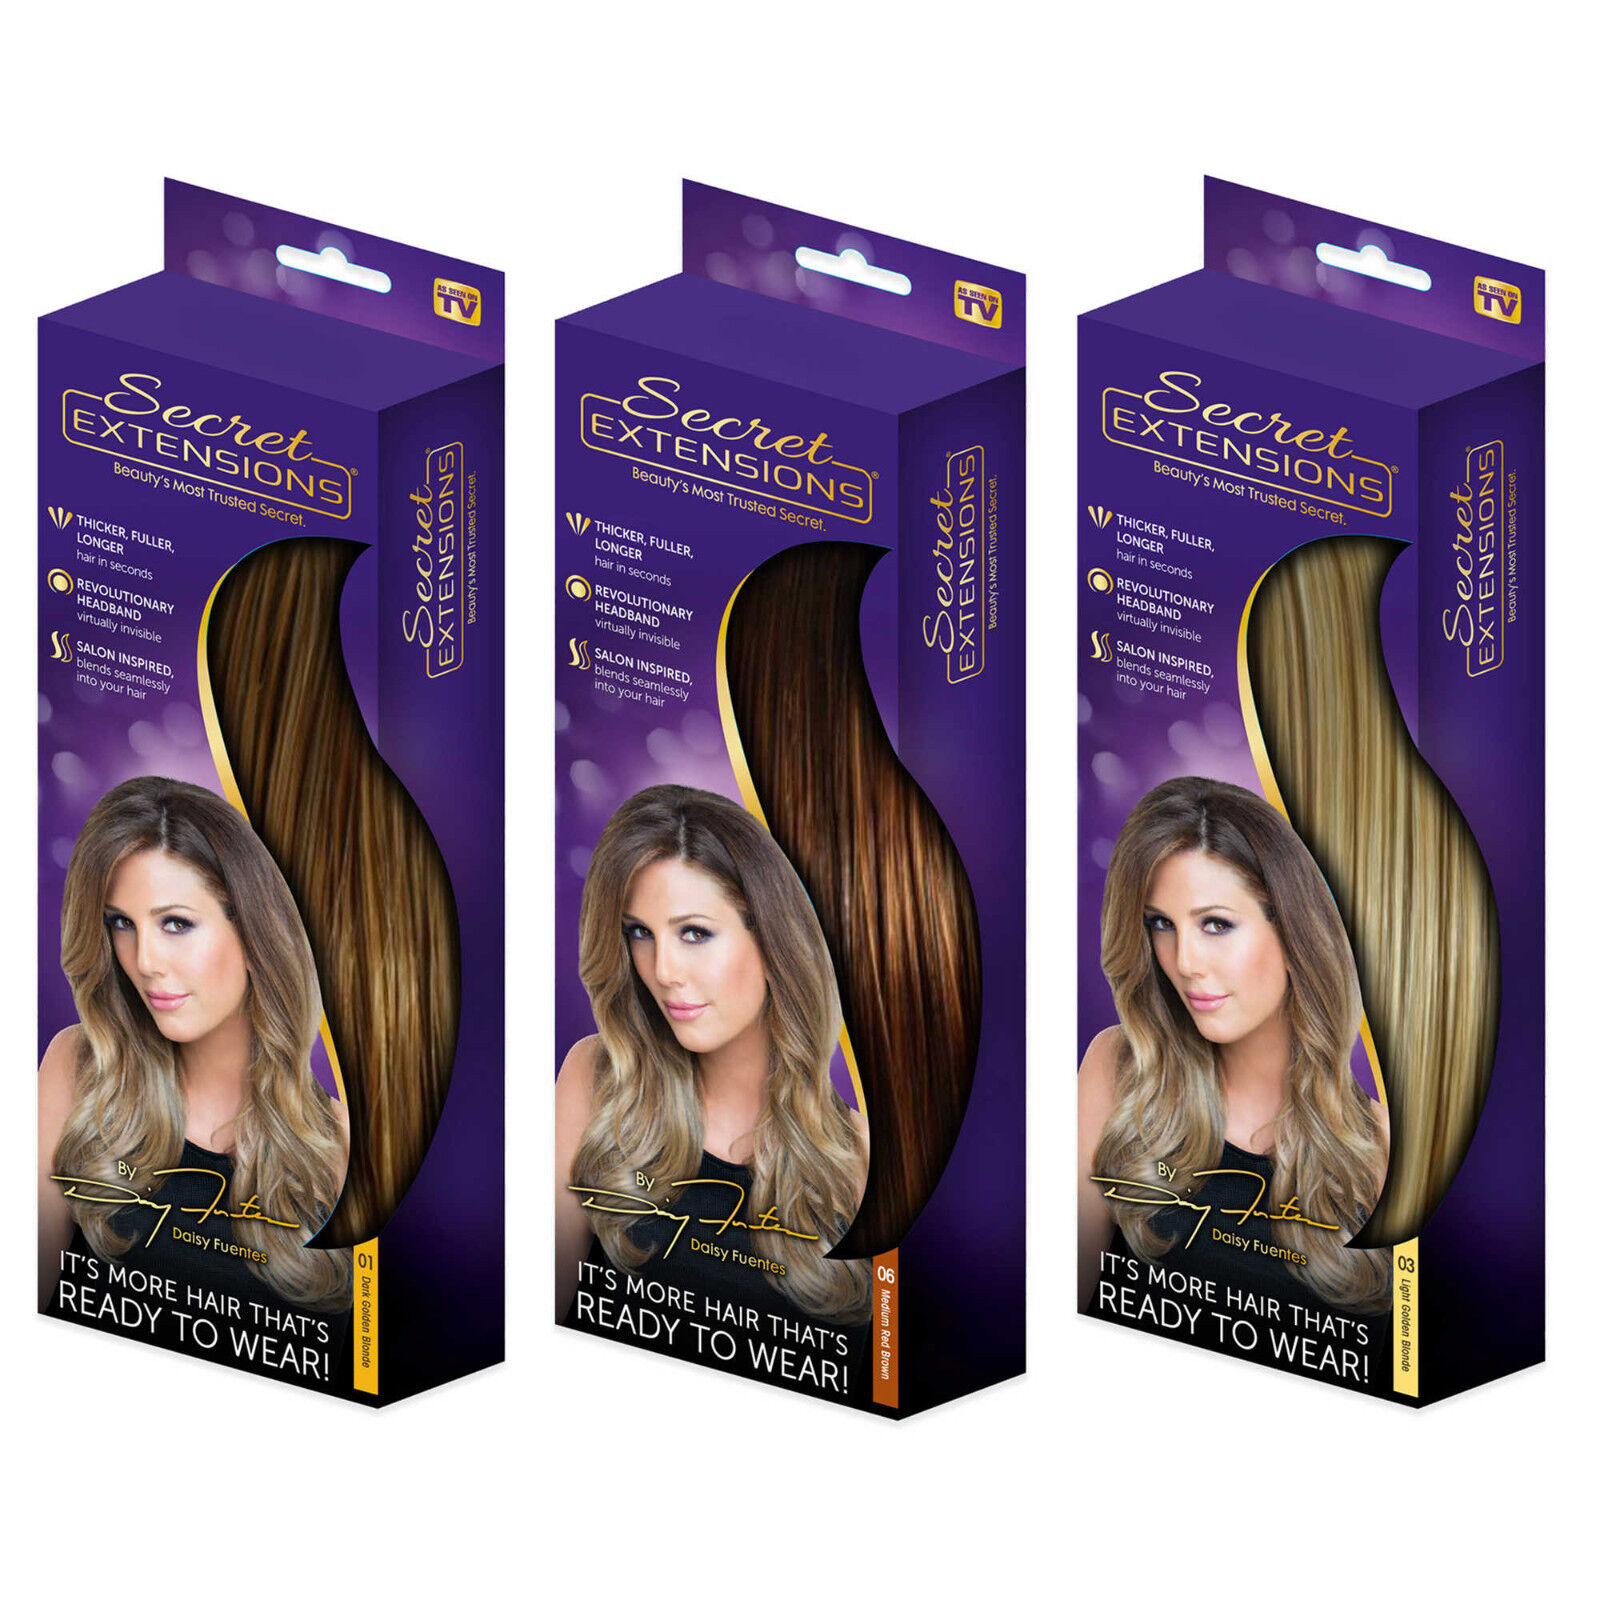 Secret extensions featuring daisy fuentes 16 double volume hair secret extensions featuring daisy fuentes 16 double volume pmusecretfo Gallery